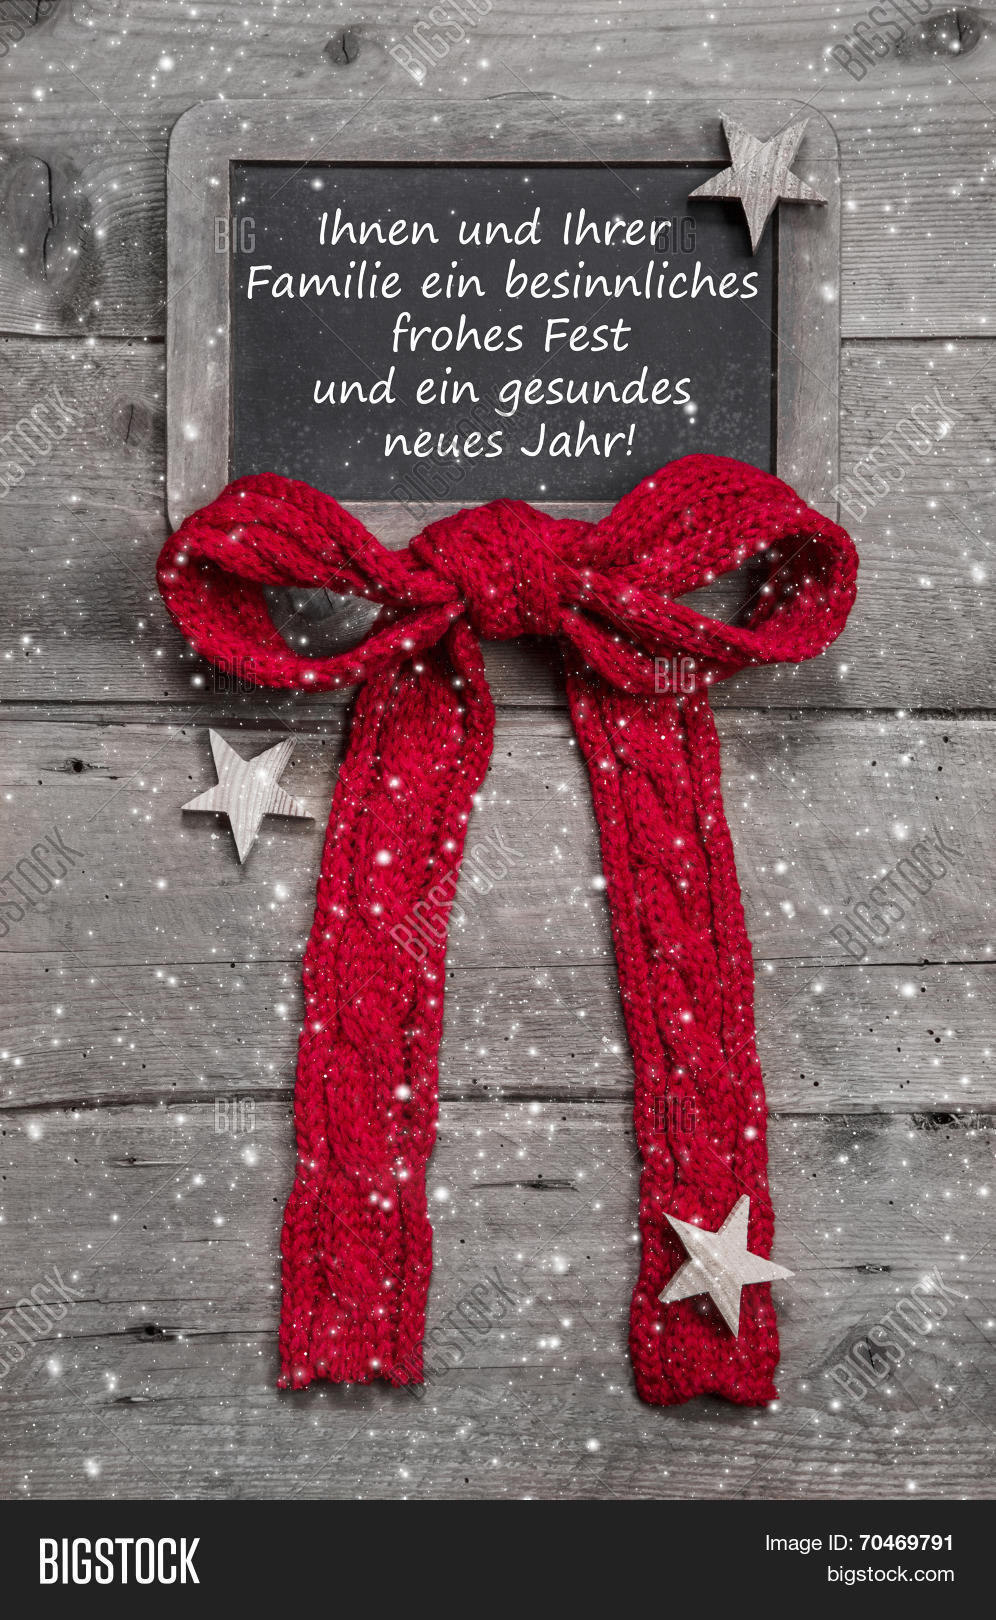 Merry christmas happy new year image photo bigstock merry christmas and a happy new year greeting card with german text in old country style m4hsunfo